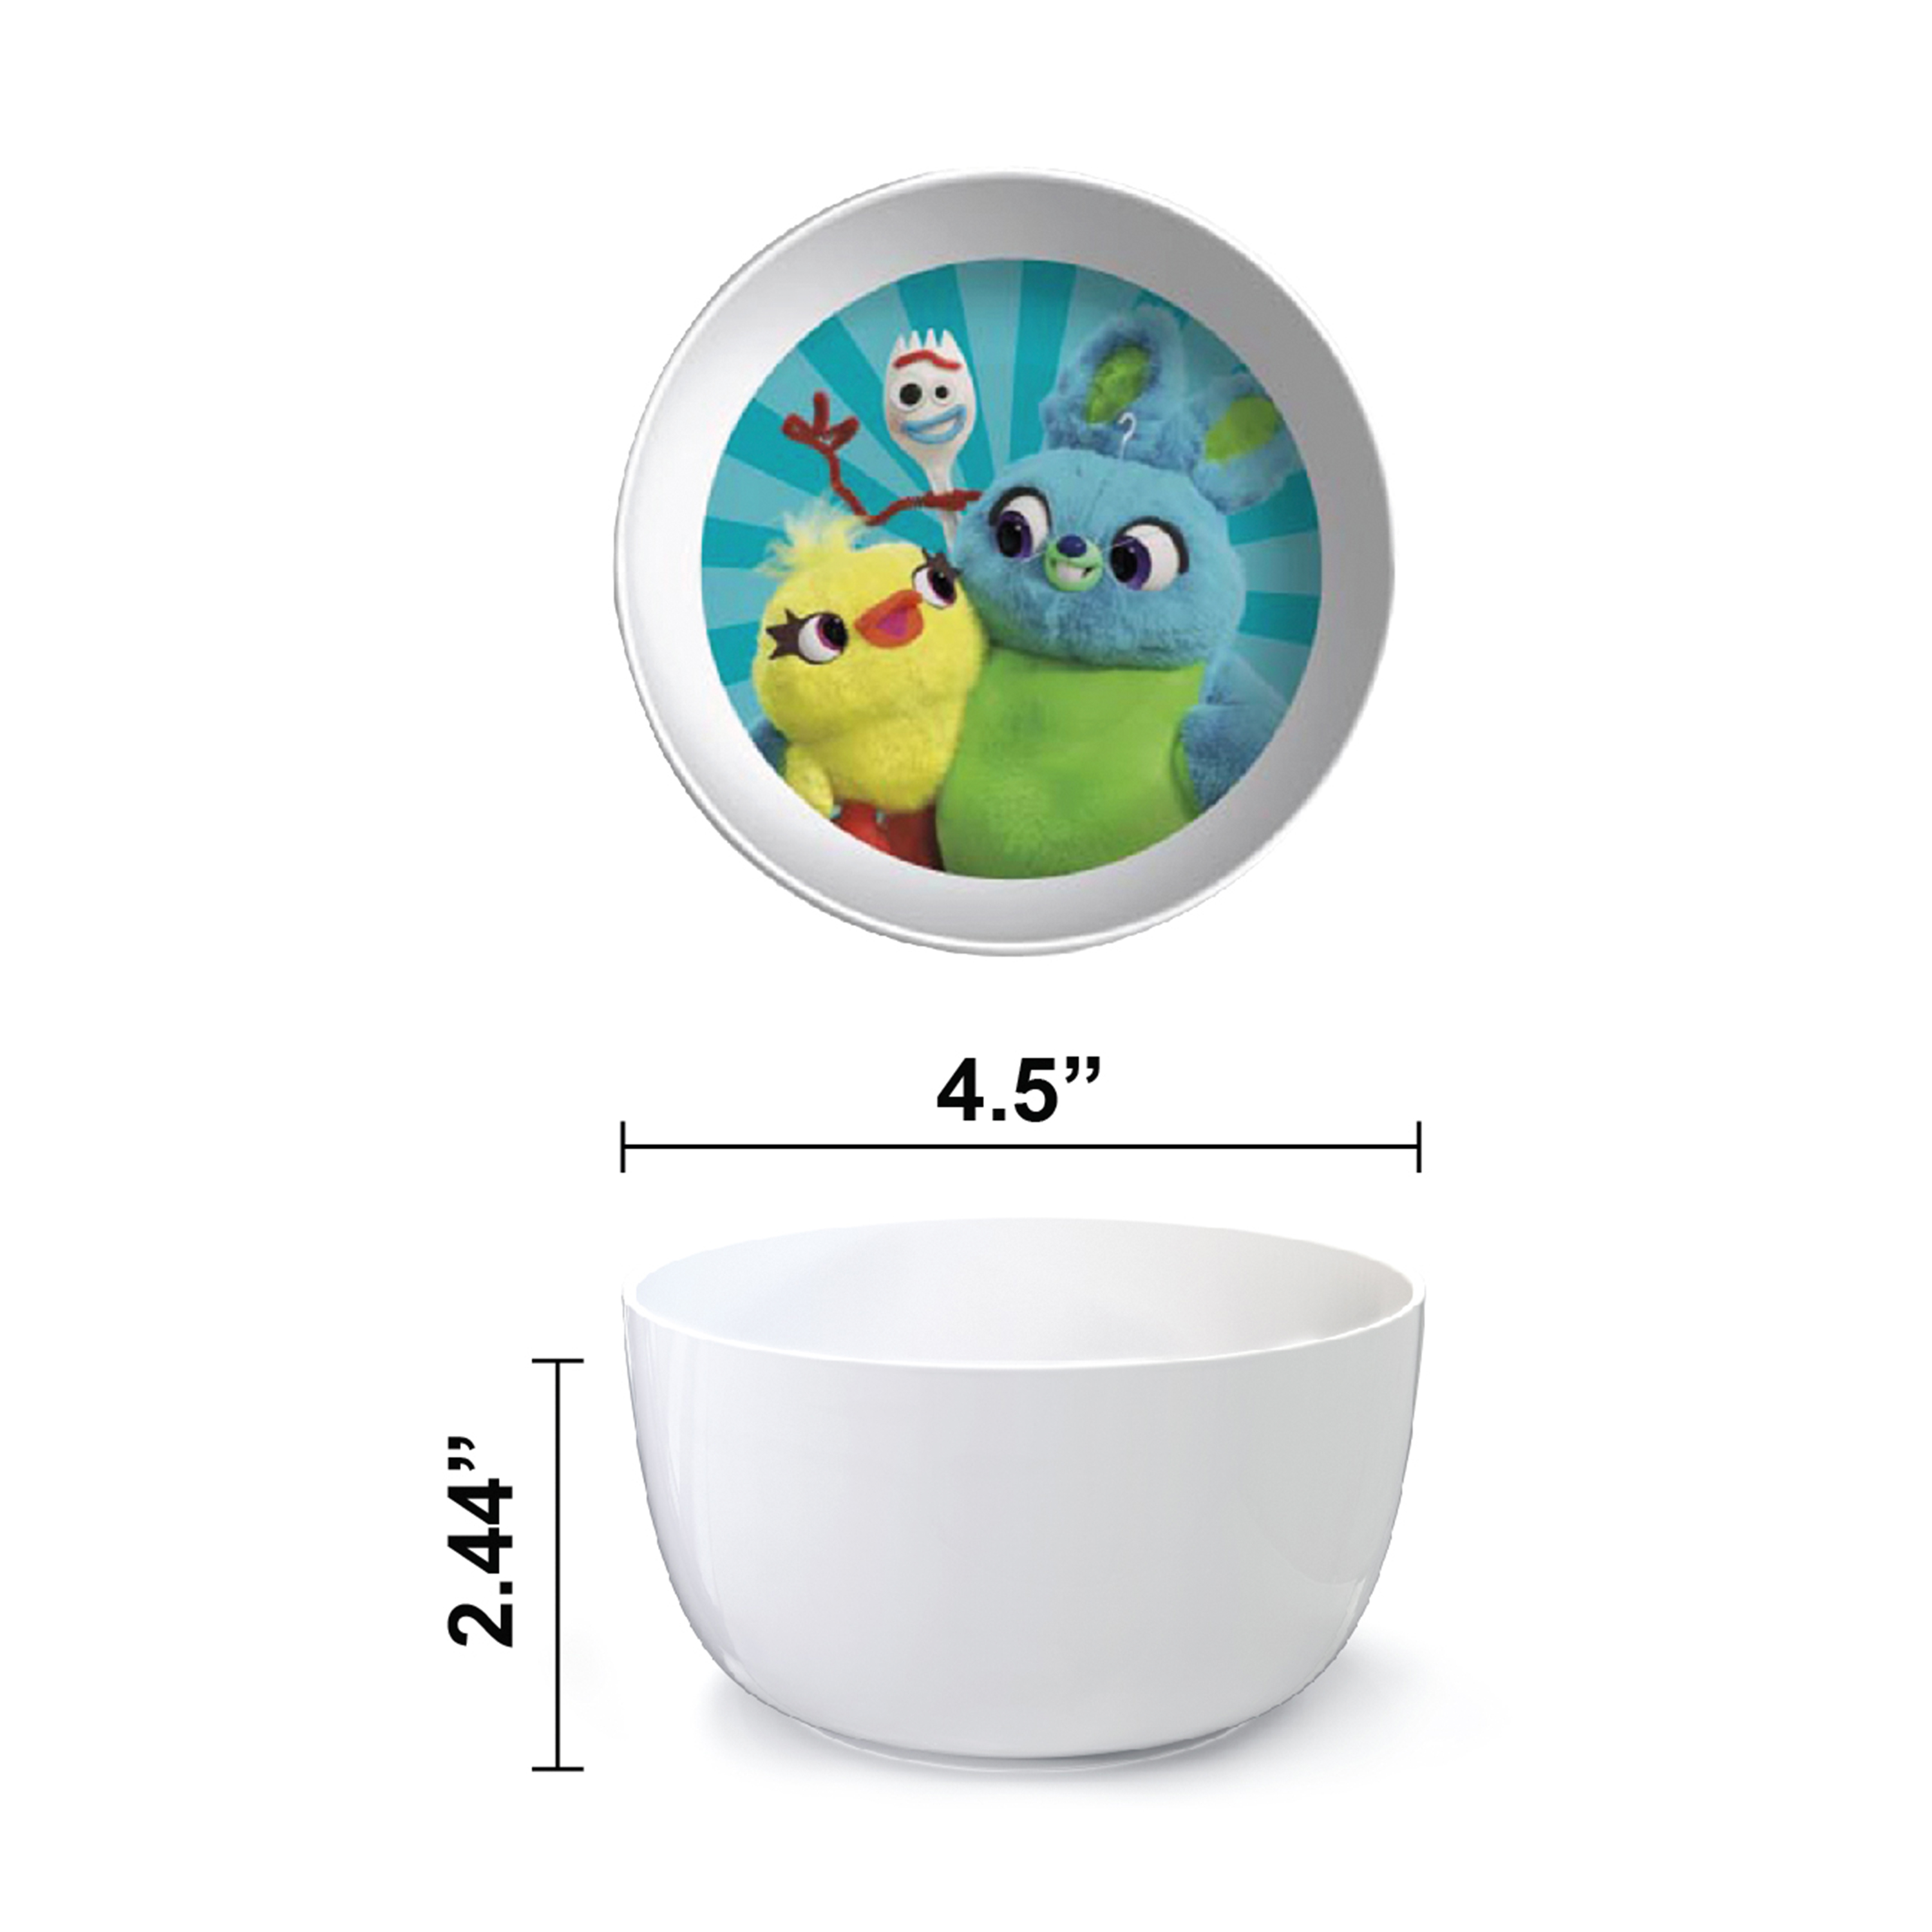 Disney Pixar Dinnerware Set, Woody, Buzz and Friends, 5-piece set slideshow image 6